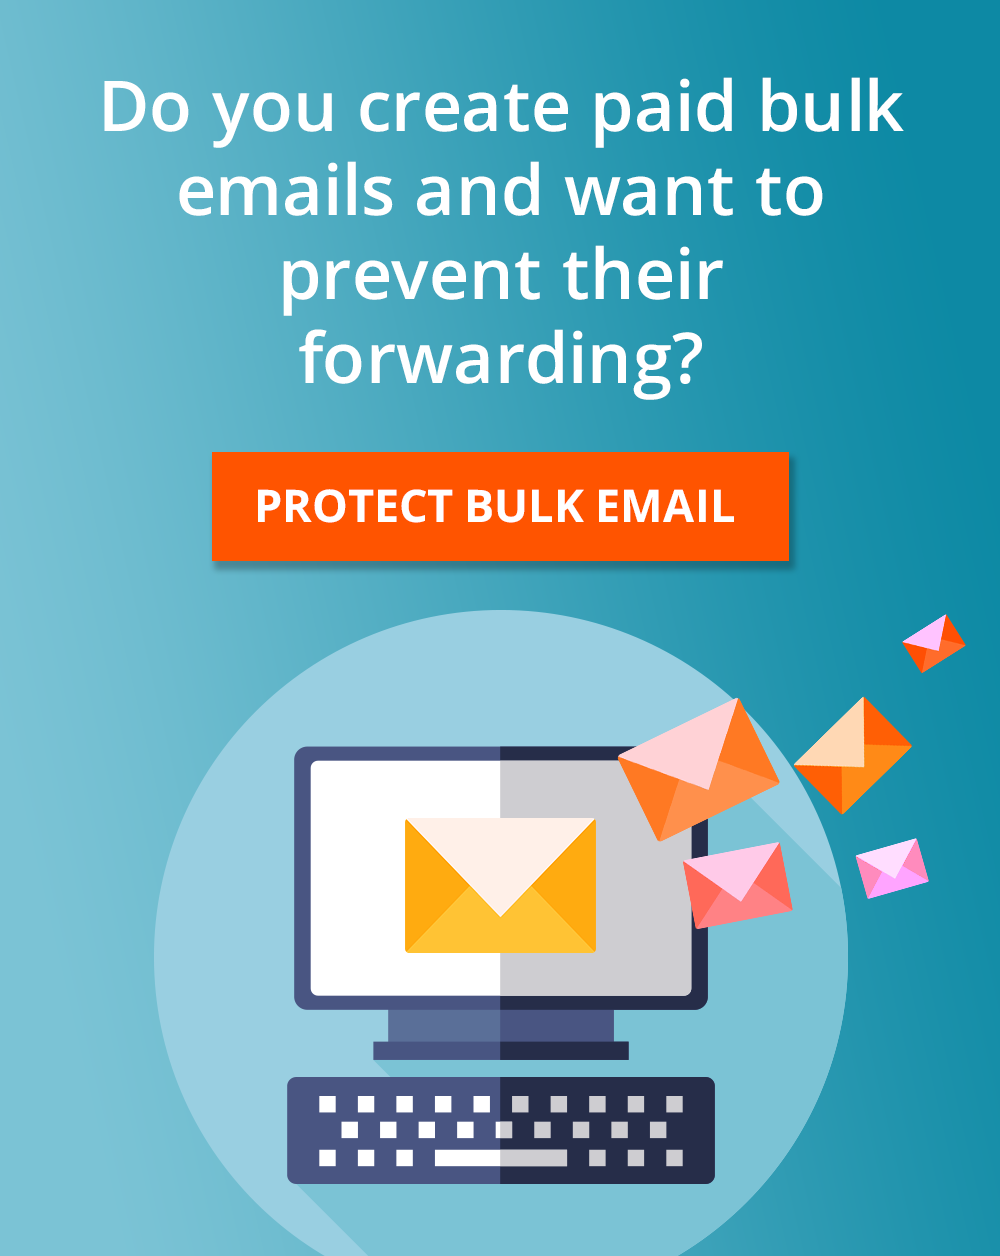 Protection of commercial bulk emails